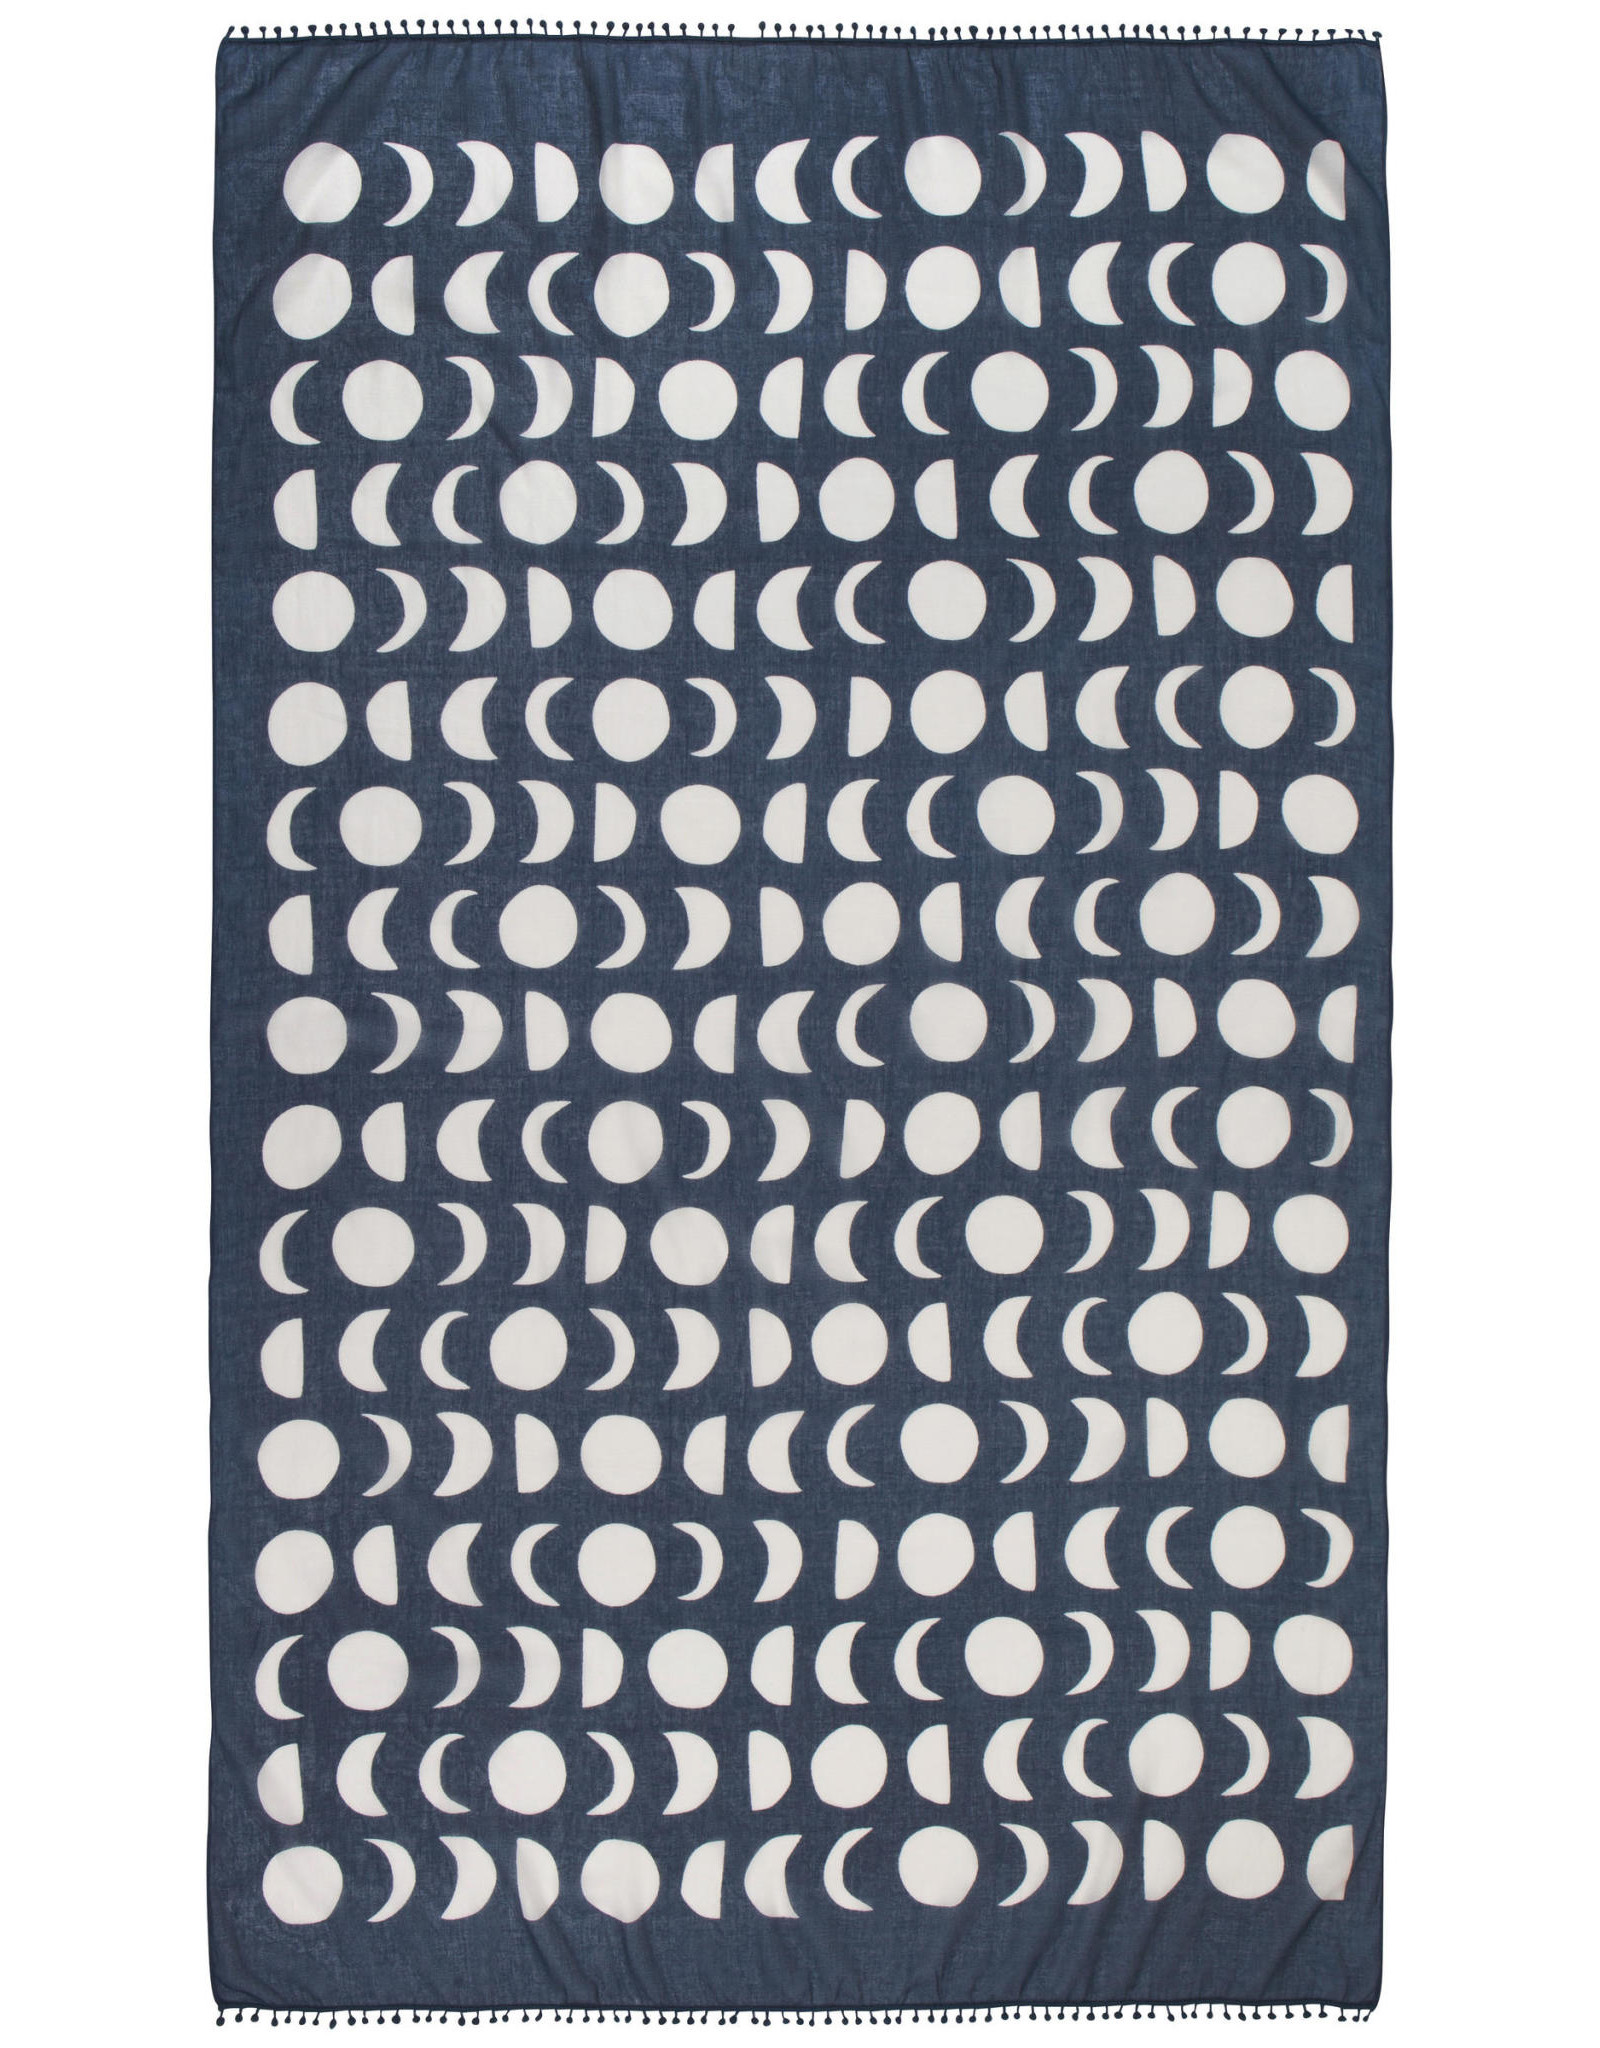 DCA - Moon Phases Scarf